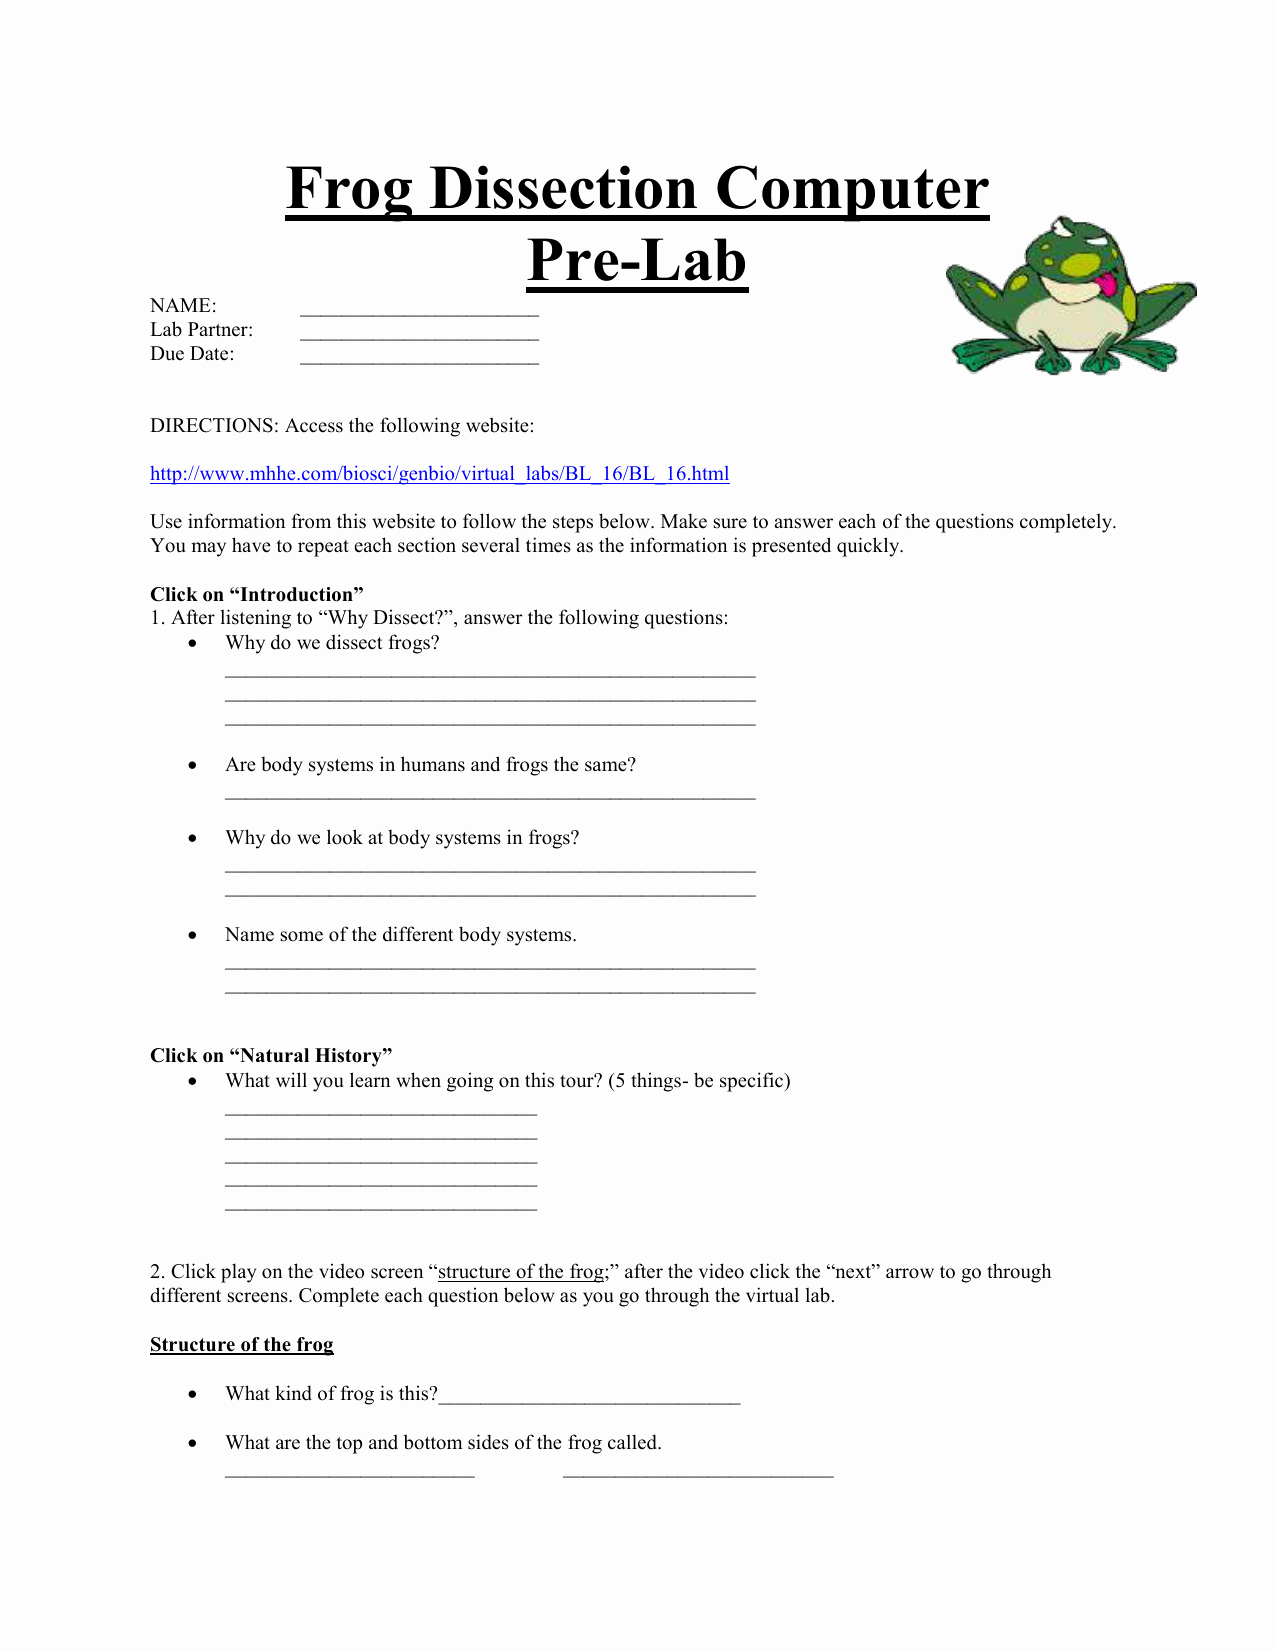 20 Interest Rate Reduction Refinancing Loan Worksheet For Interest Rate Reduction Refinancing Loan Worksheet